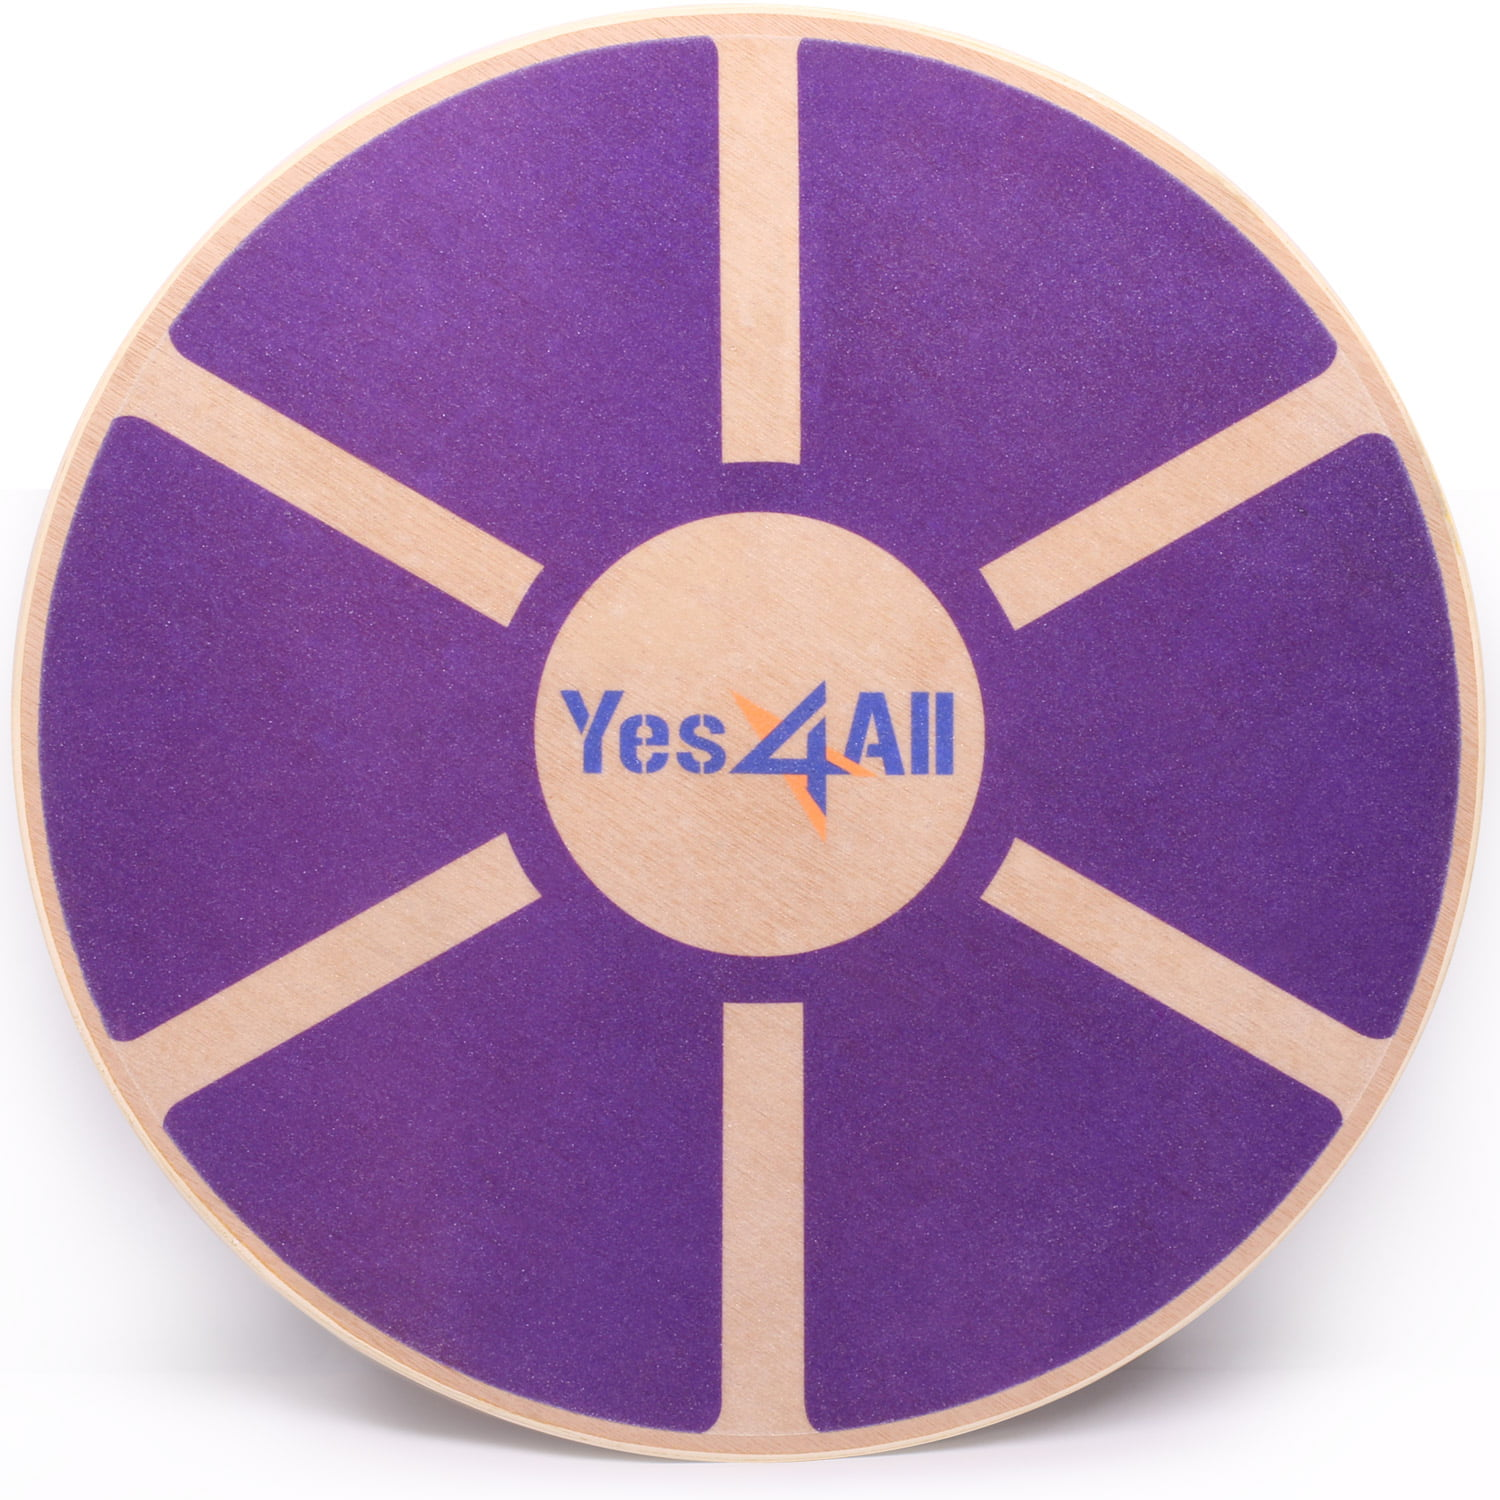 Yes4All Wooden Balance Board Wobble � Exercise Balance Trainer (15.75-inch Diameter) by Supplier Generic